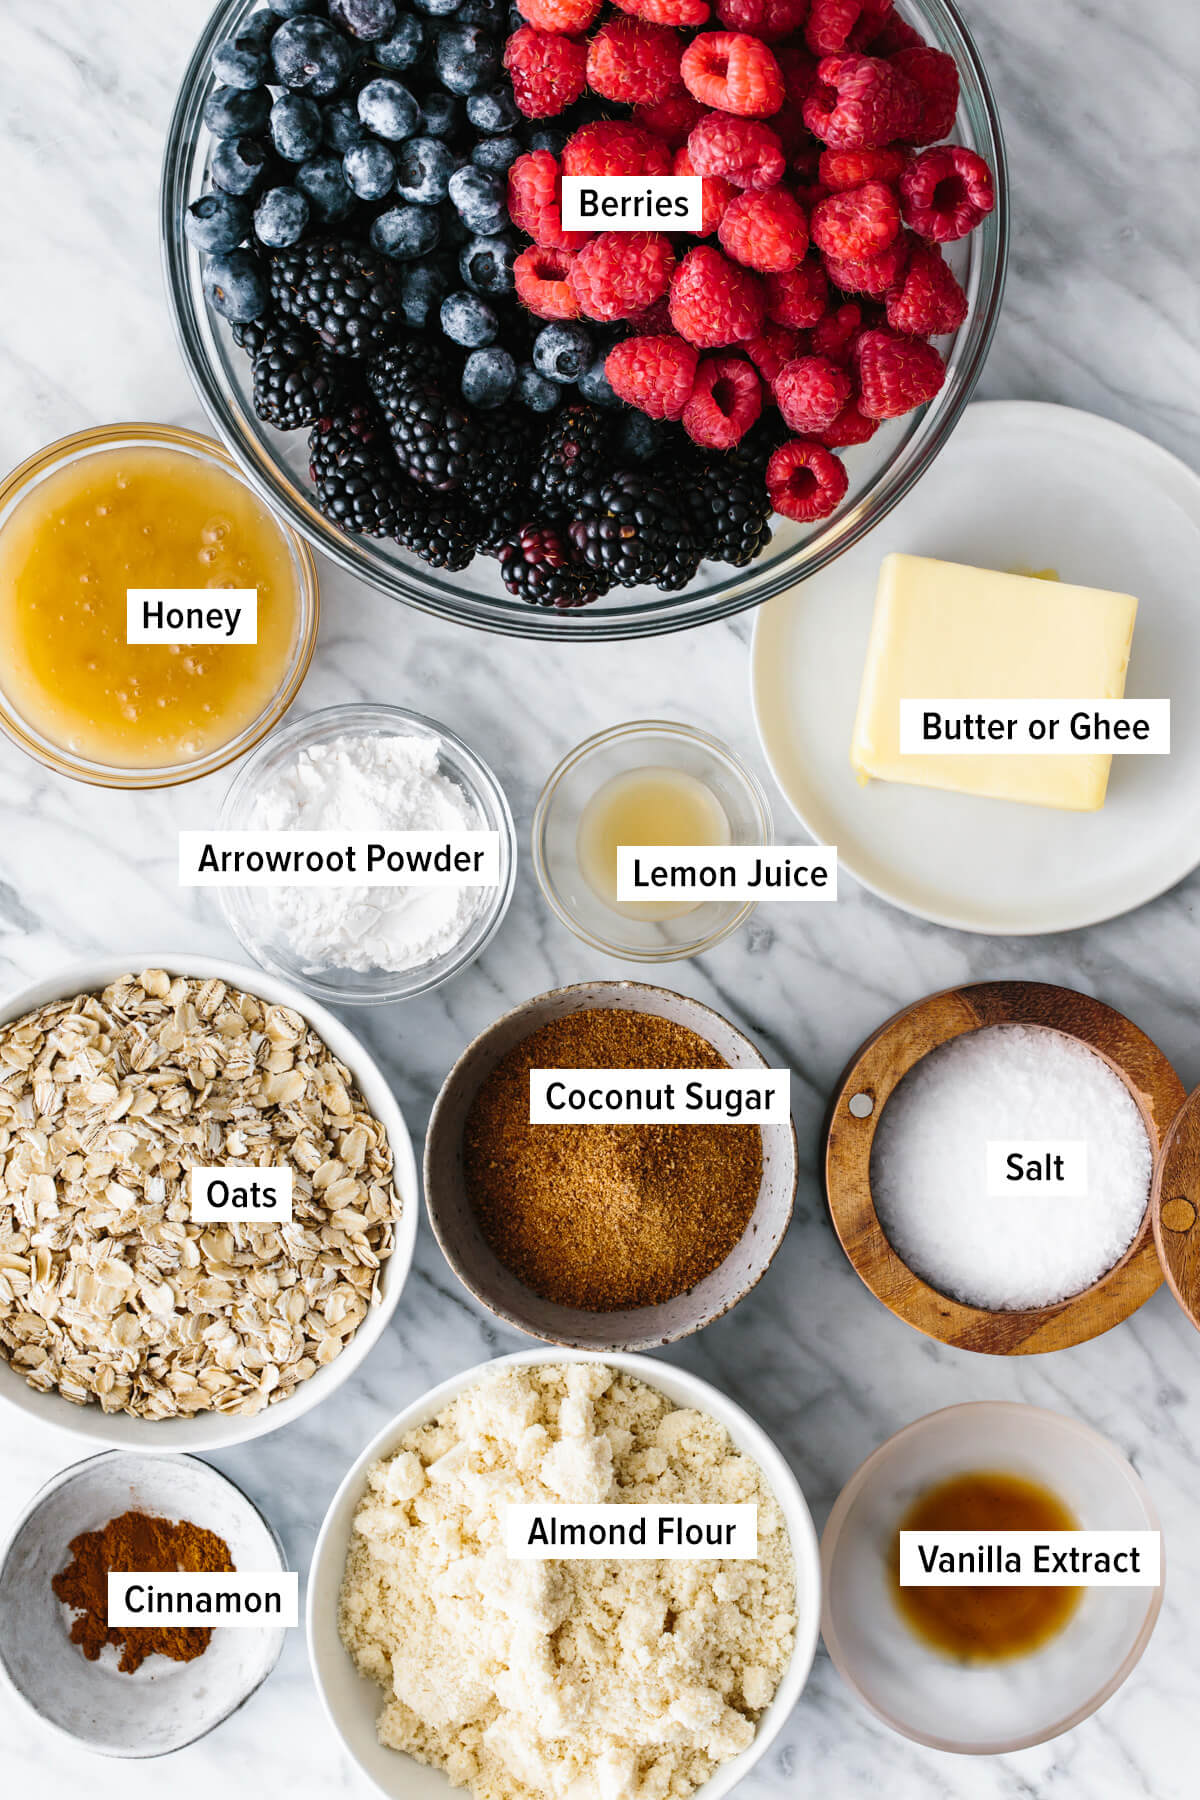 The ingredients for making berry crisp on a table.